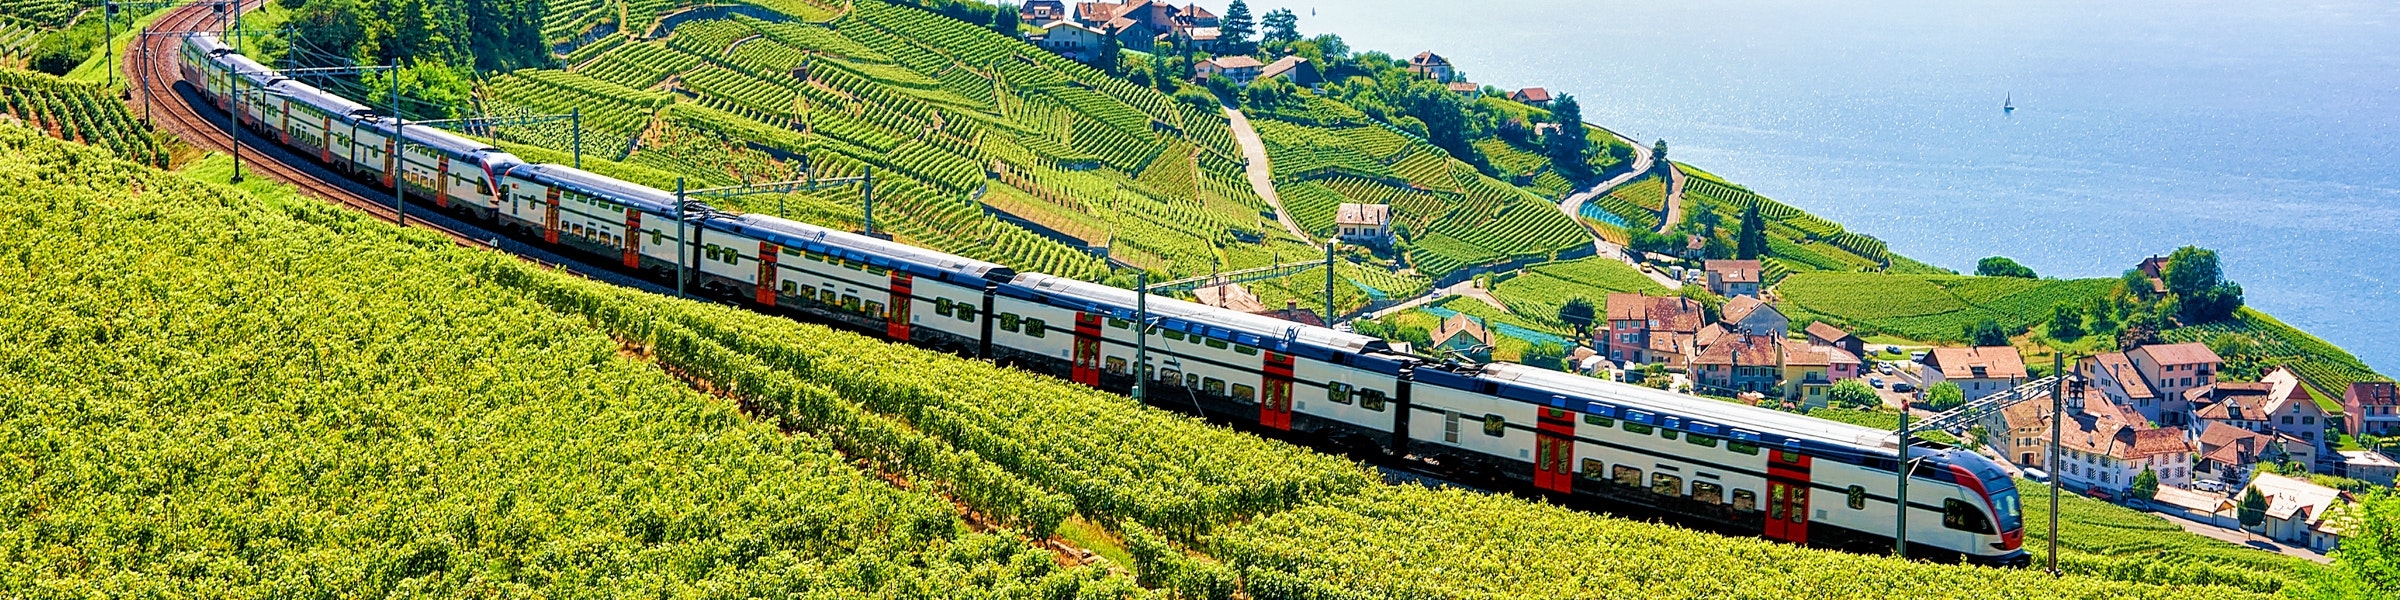 Double deck train Lavaux